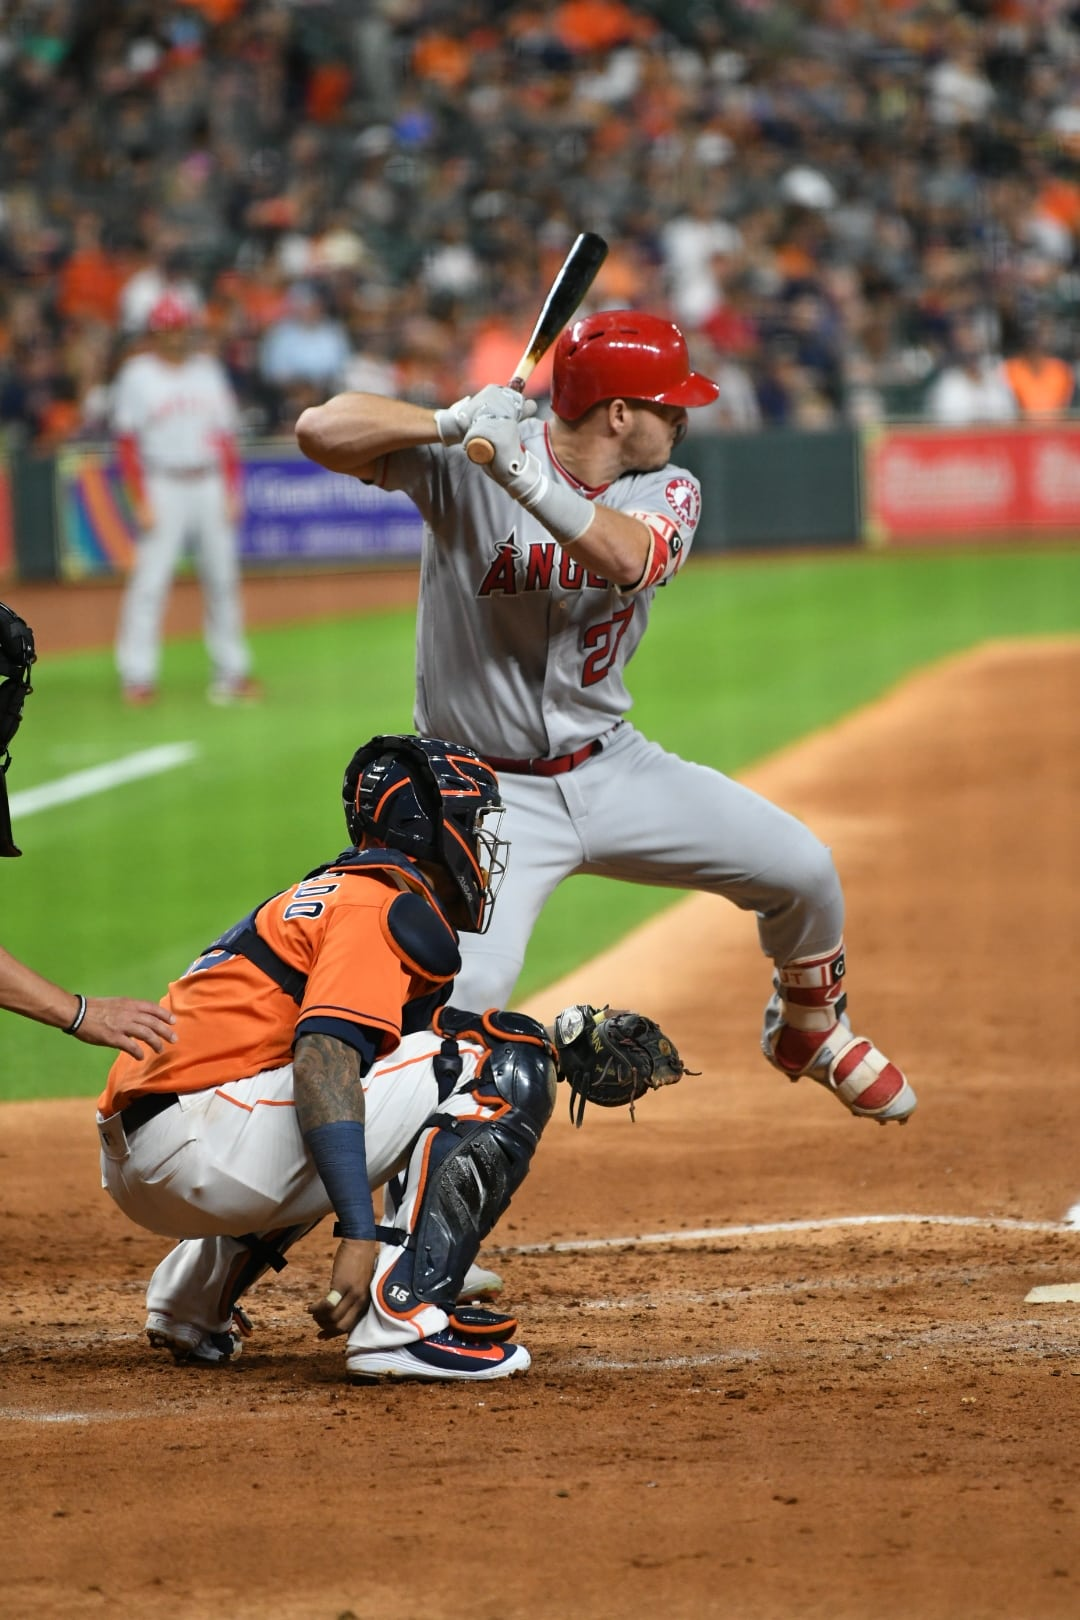 Mike Trout - I usually focus on the Astros whether at bat or on the field but make a few exceptions